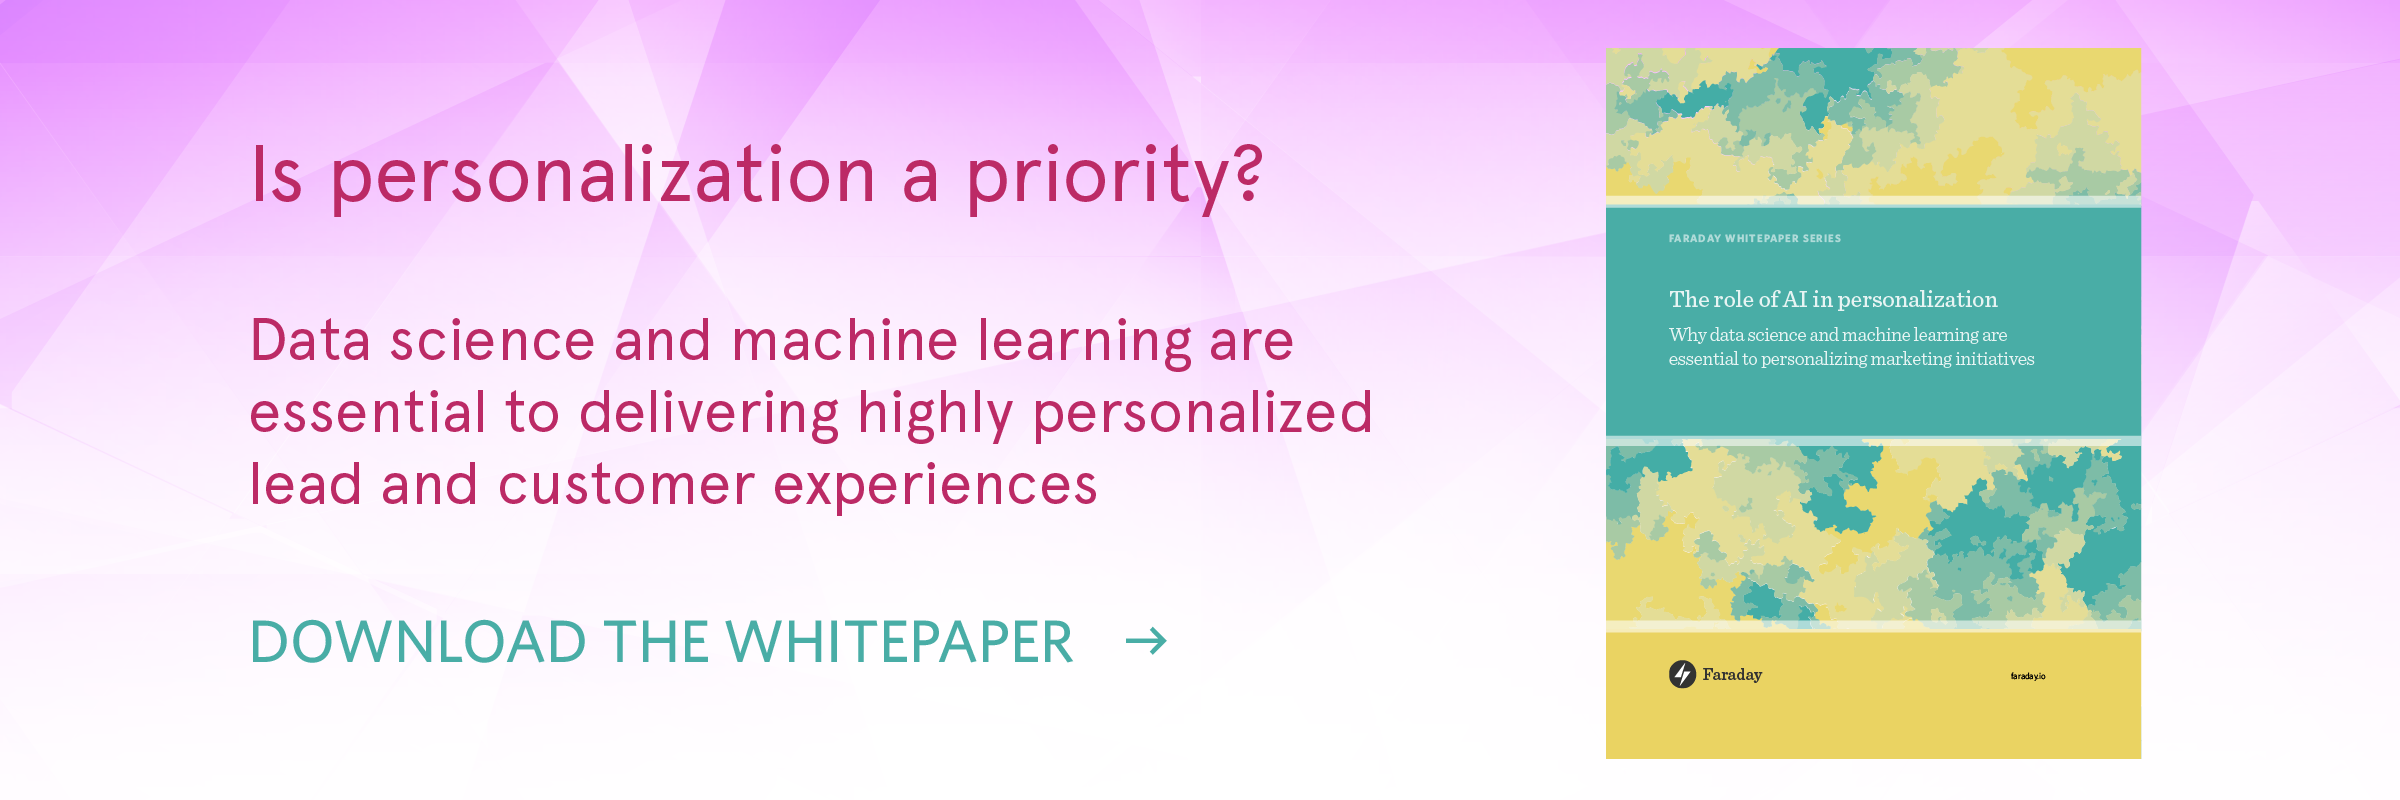 """The role of AI in personalization"" whitepaper promo"